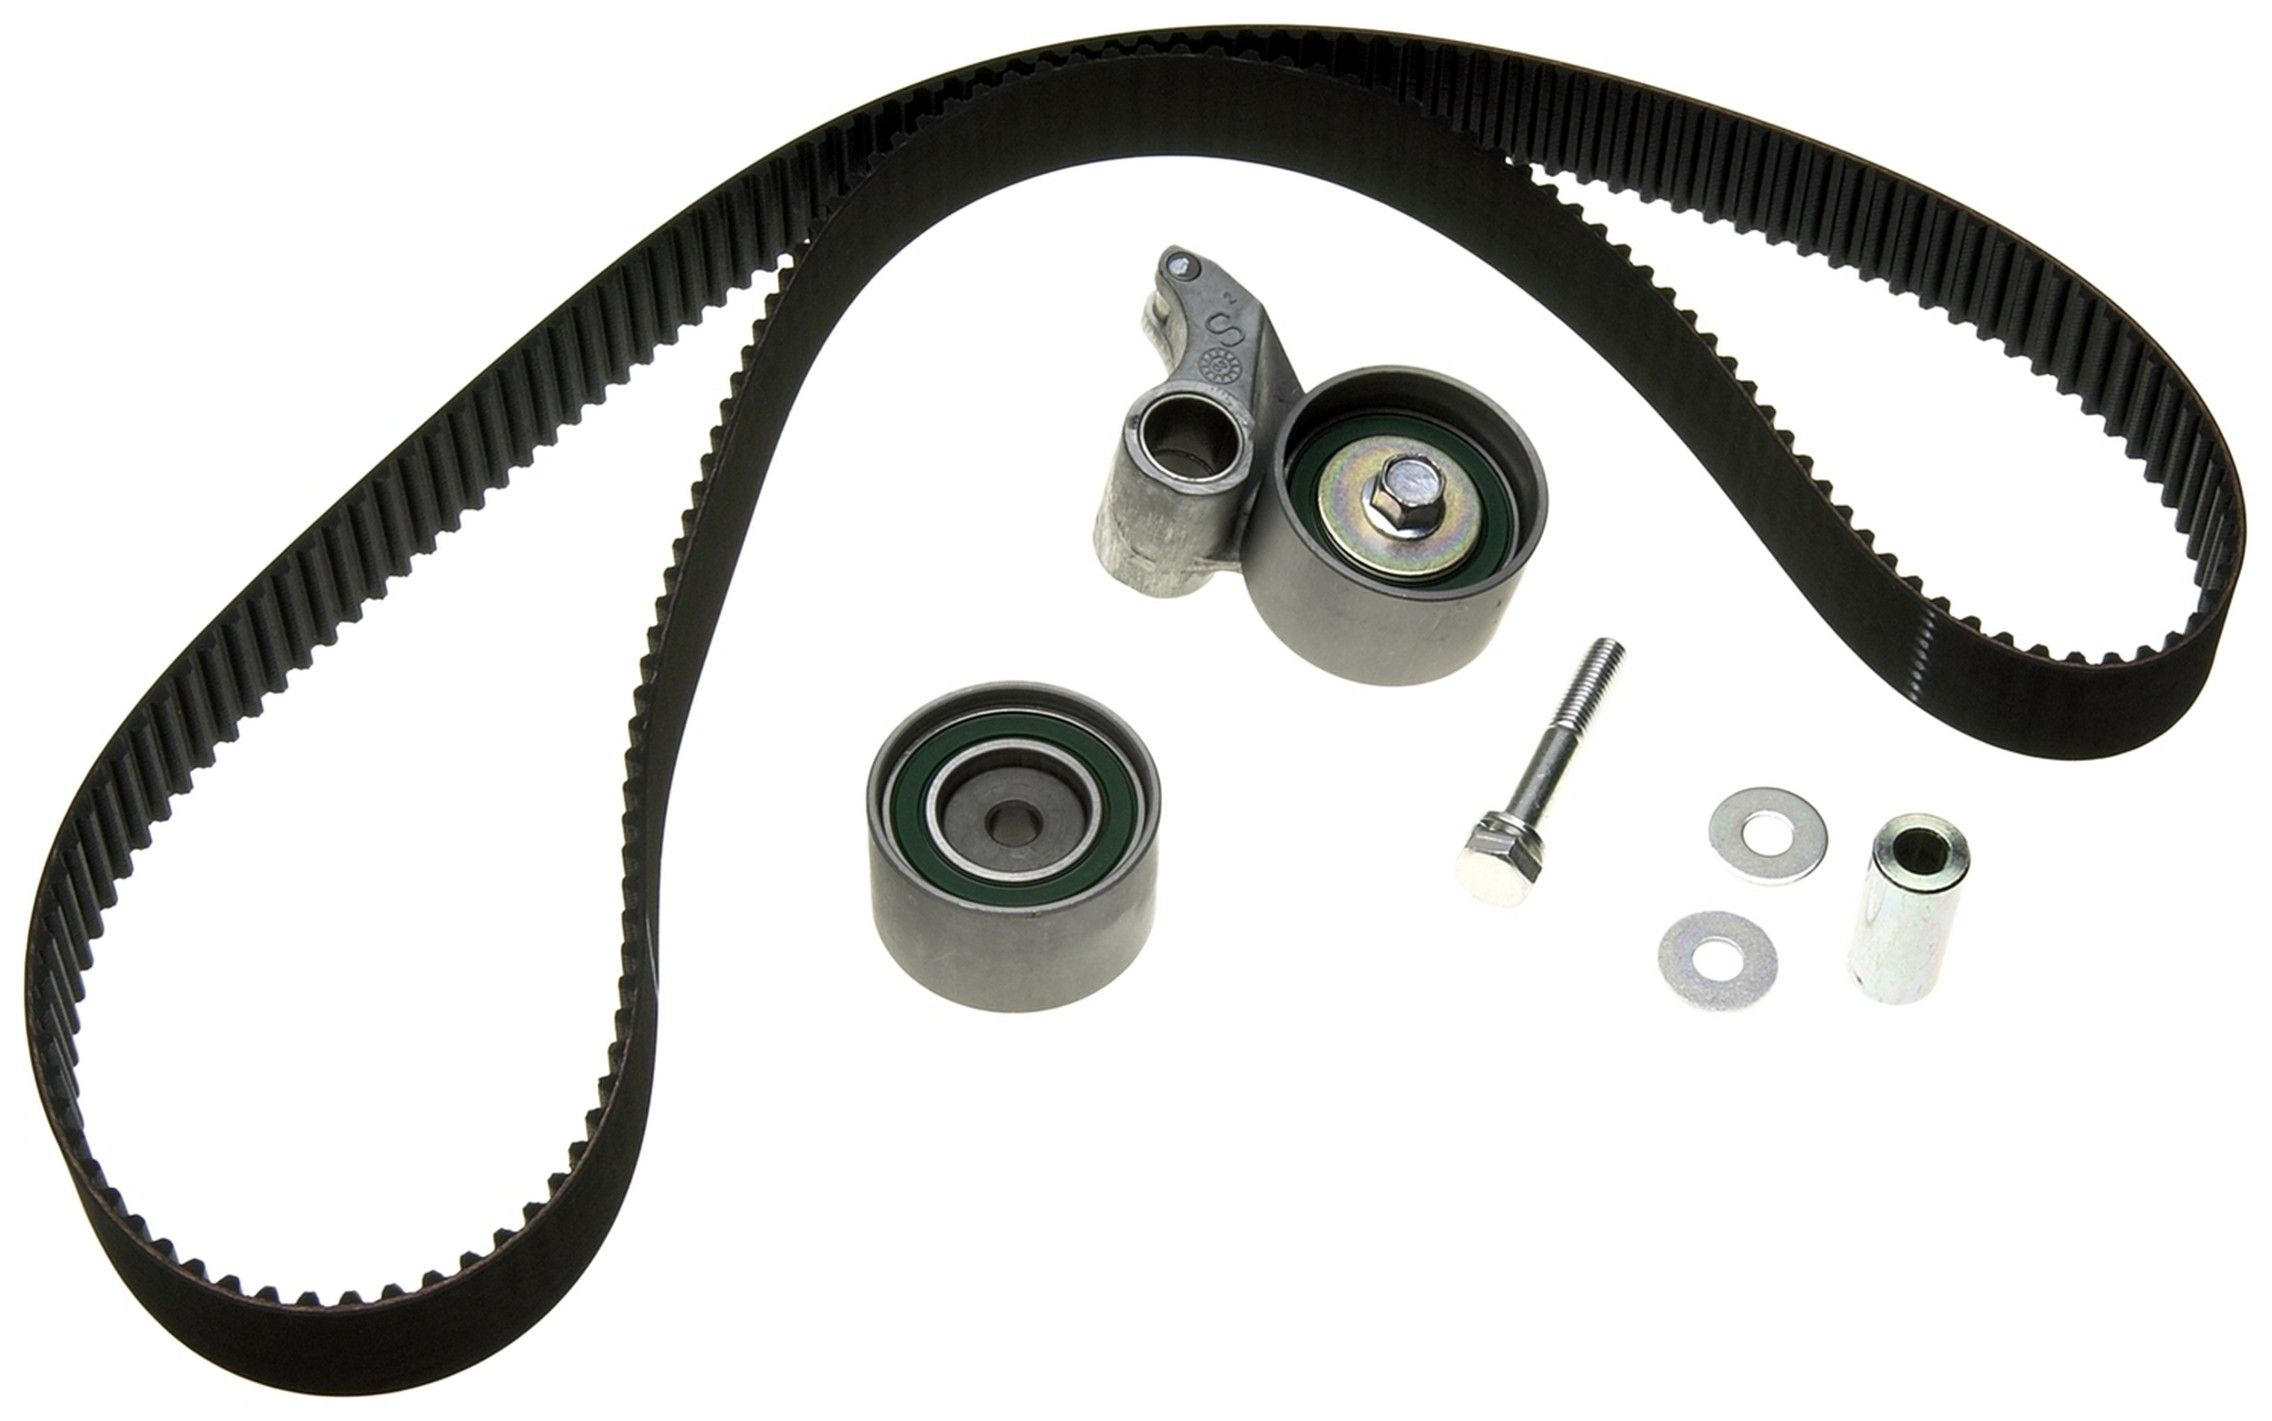 Isuzu Amigo Engine Timing Belt Component Kit Replacement Beck 1999 Water Pump 2000 6 Cyl 32l Gates Tck303 Interference Application Does Not Include Cam Tensioner Hyd Assy